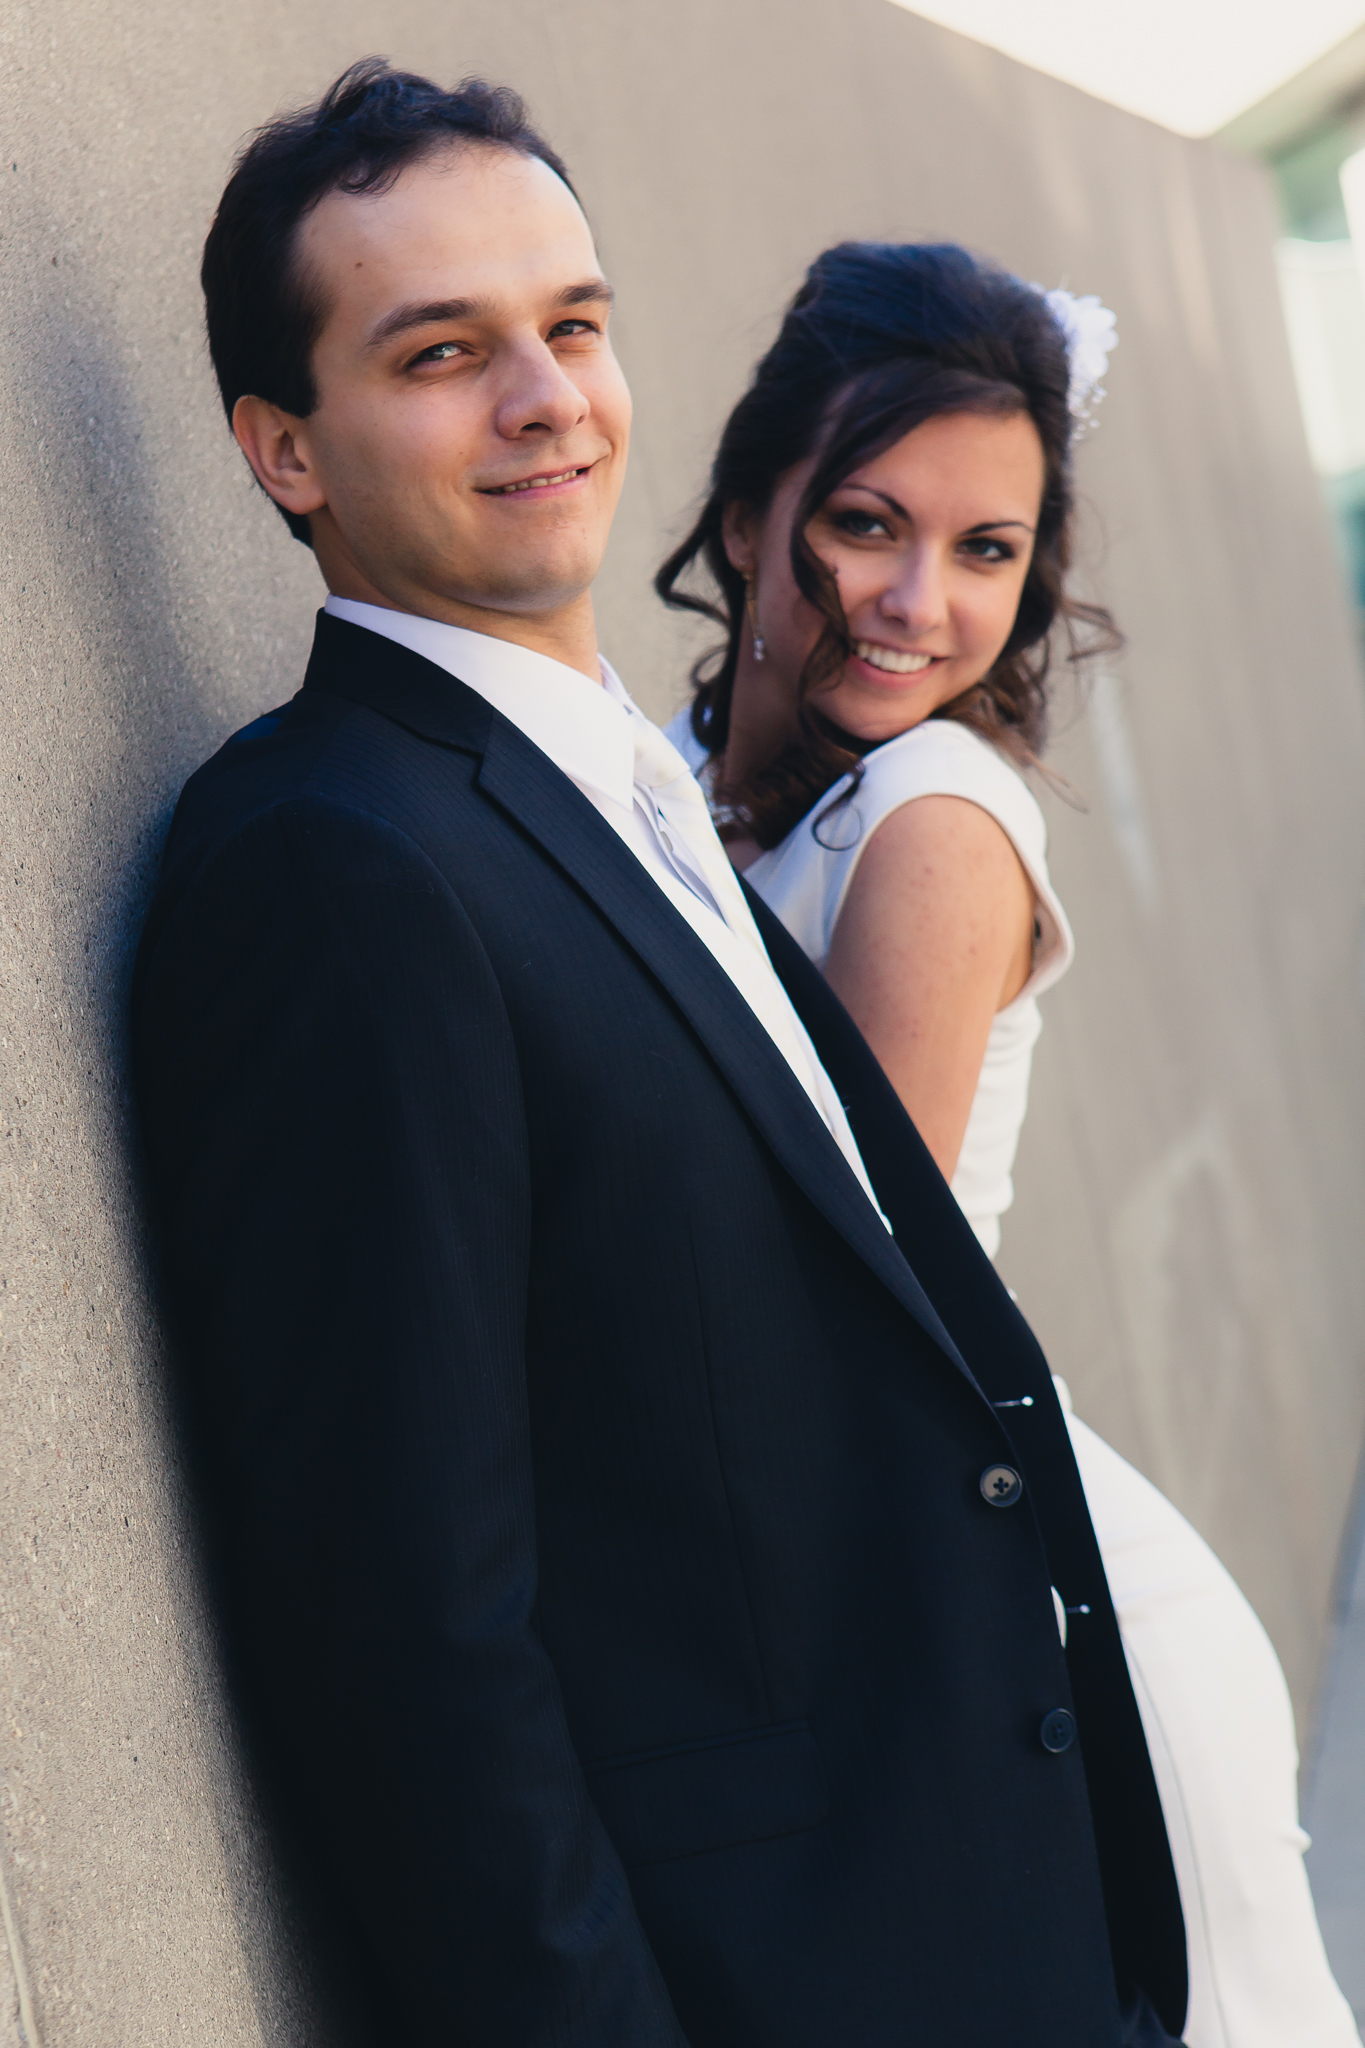 Toronto Wedding Photography - Zoya & Alexei -28.jpg